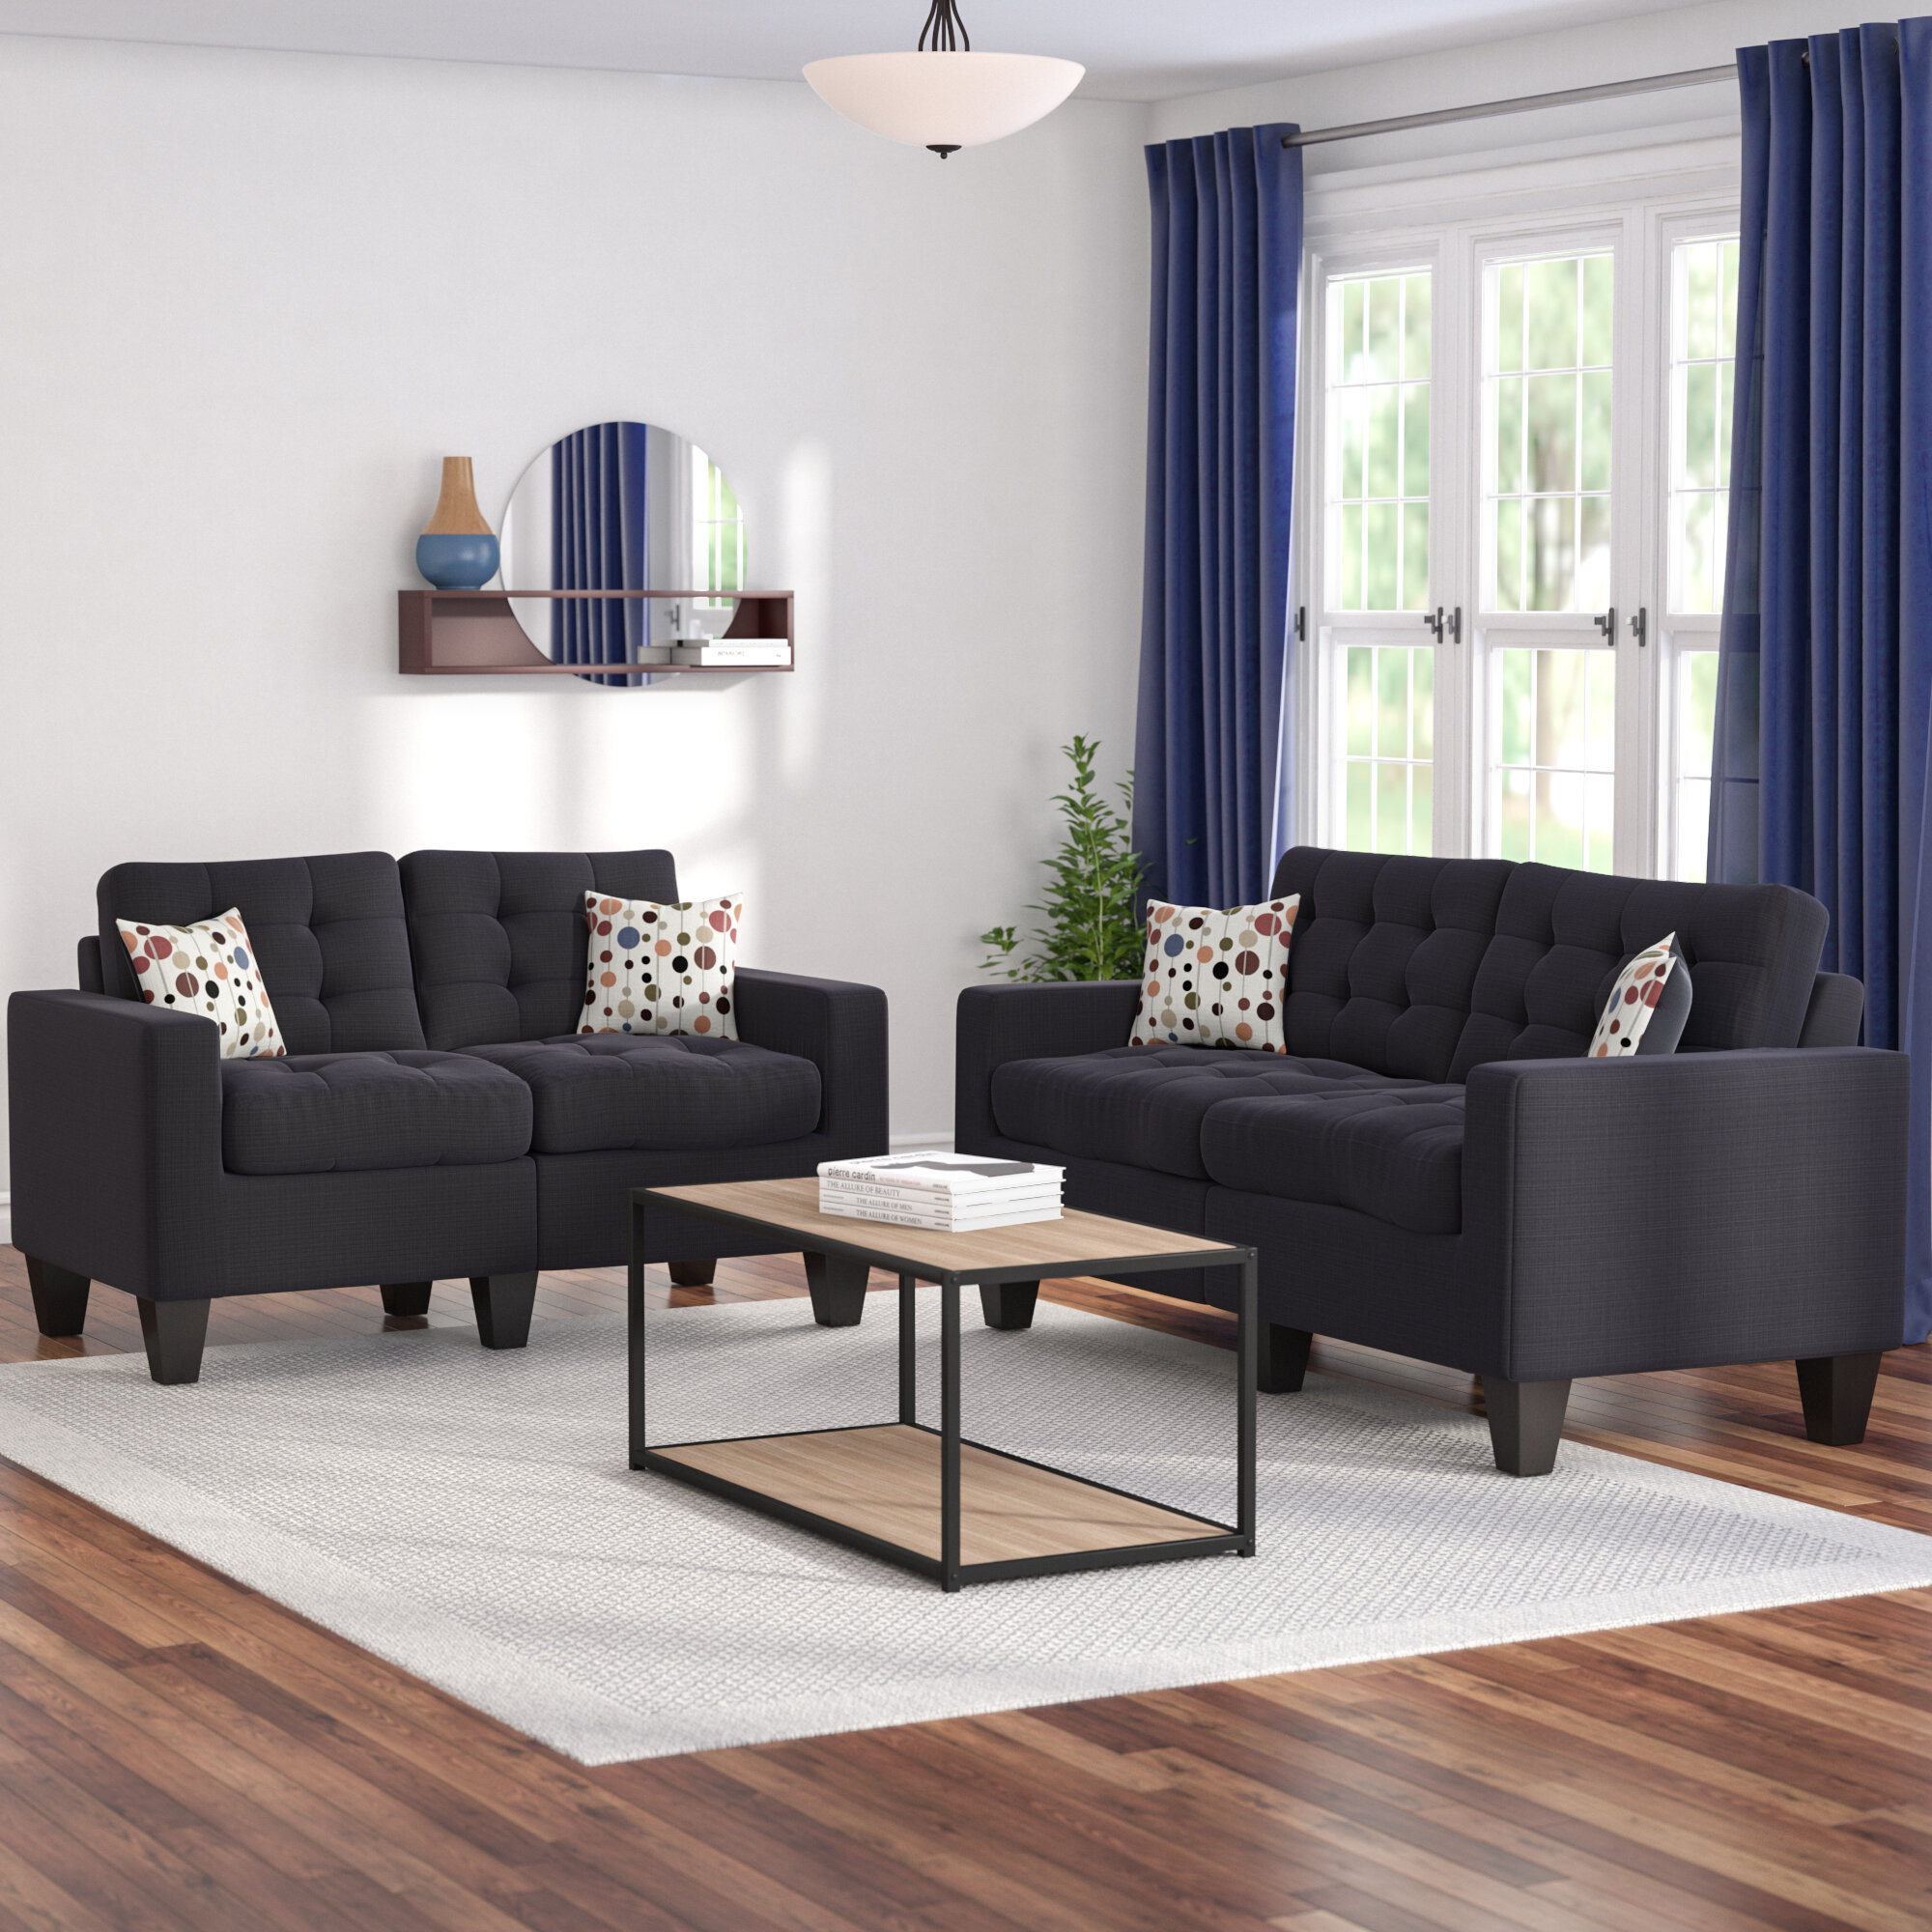 Zipcode design amia 2 piece living room set reviews wayfair